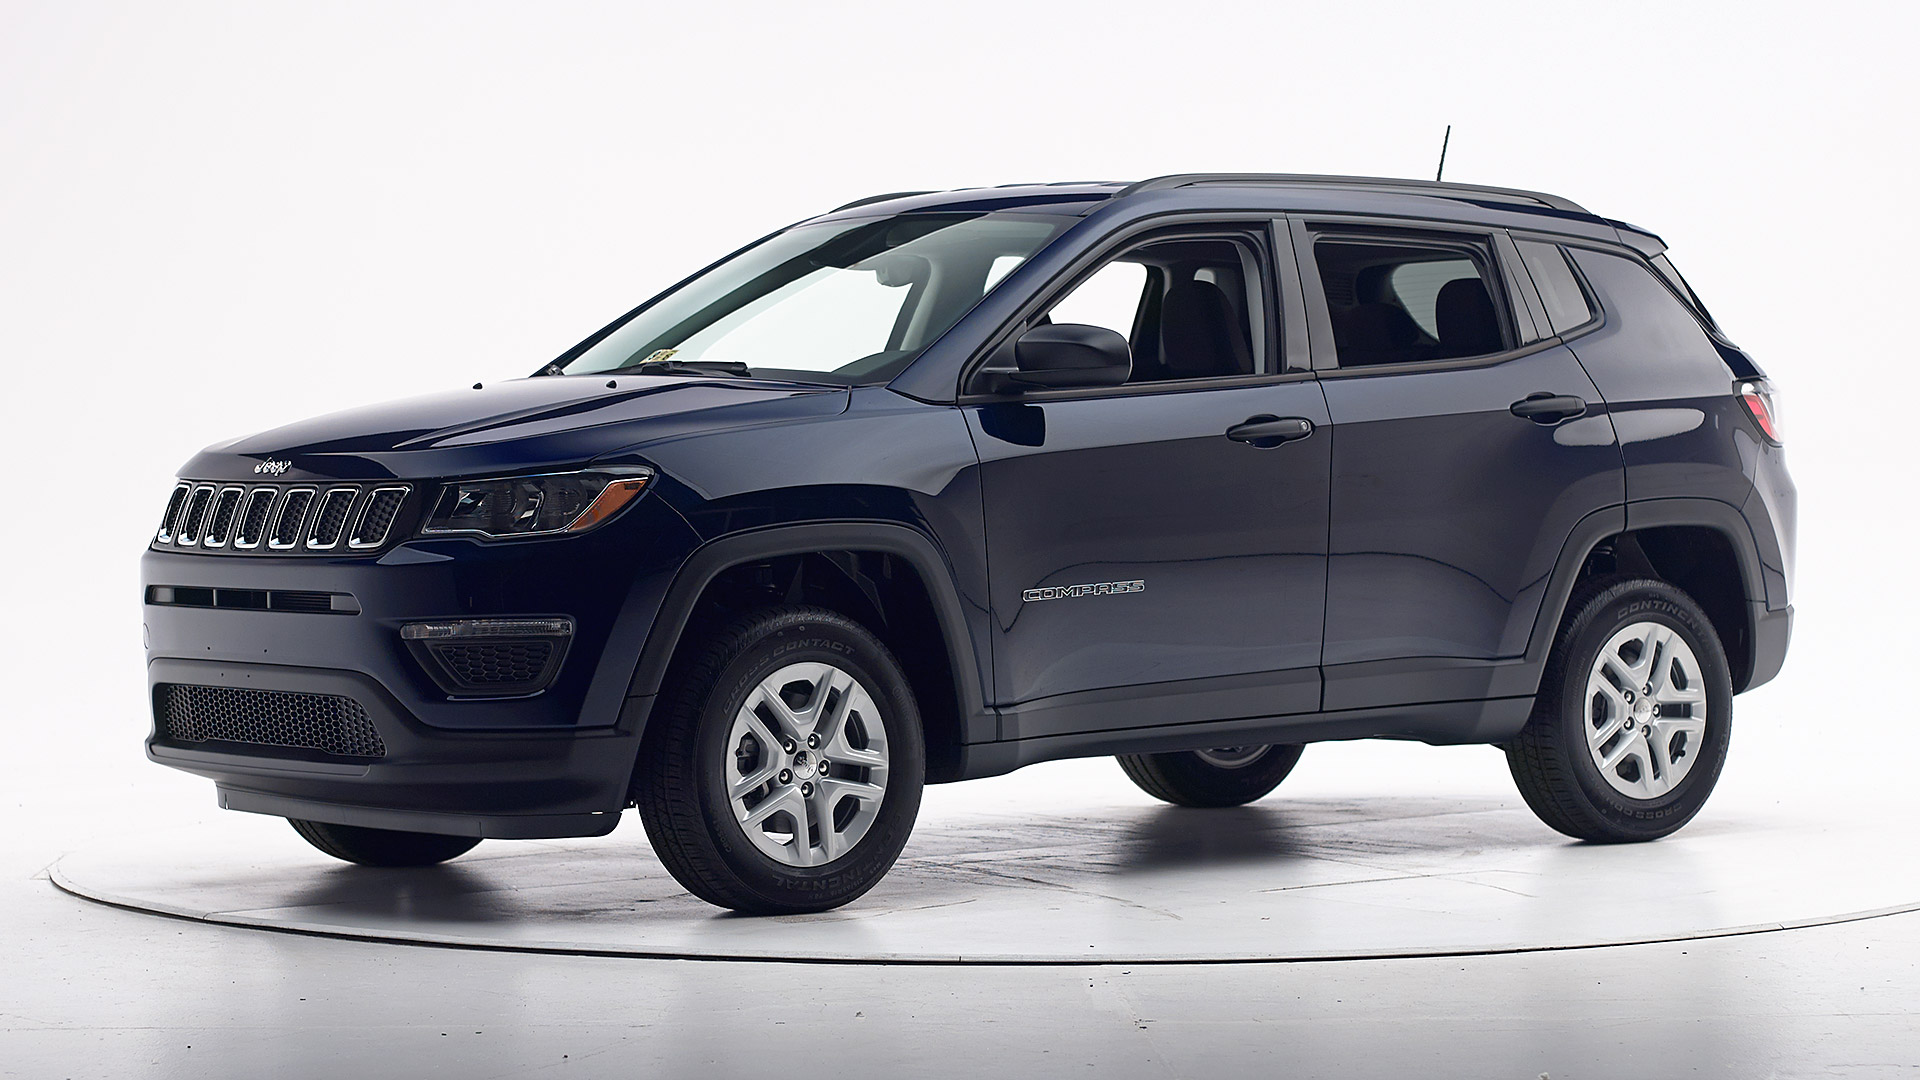 2018 Jeep Compass 4-door SUV